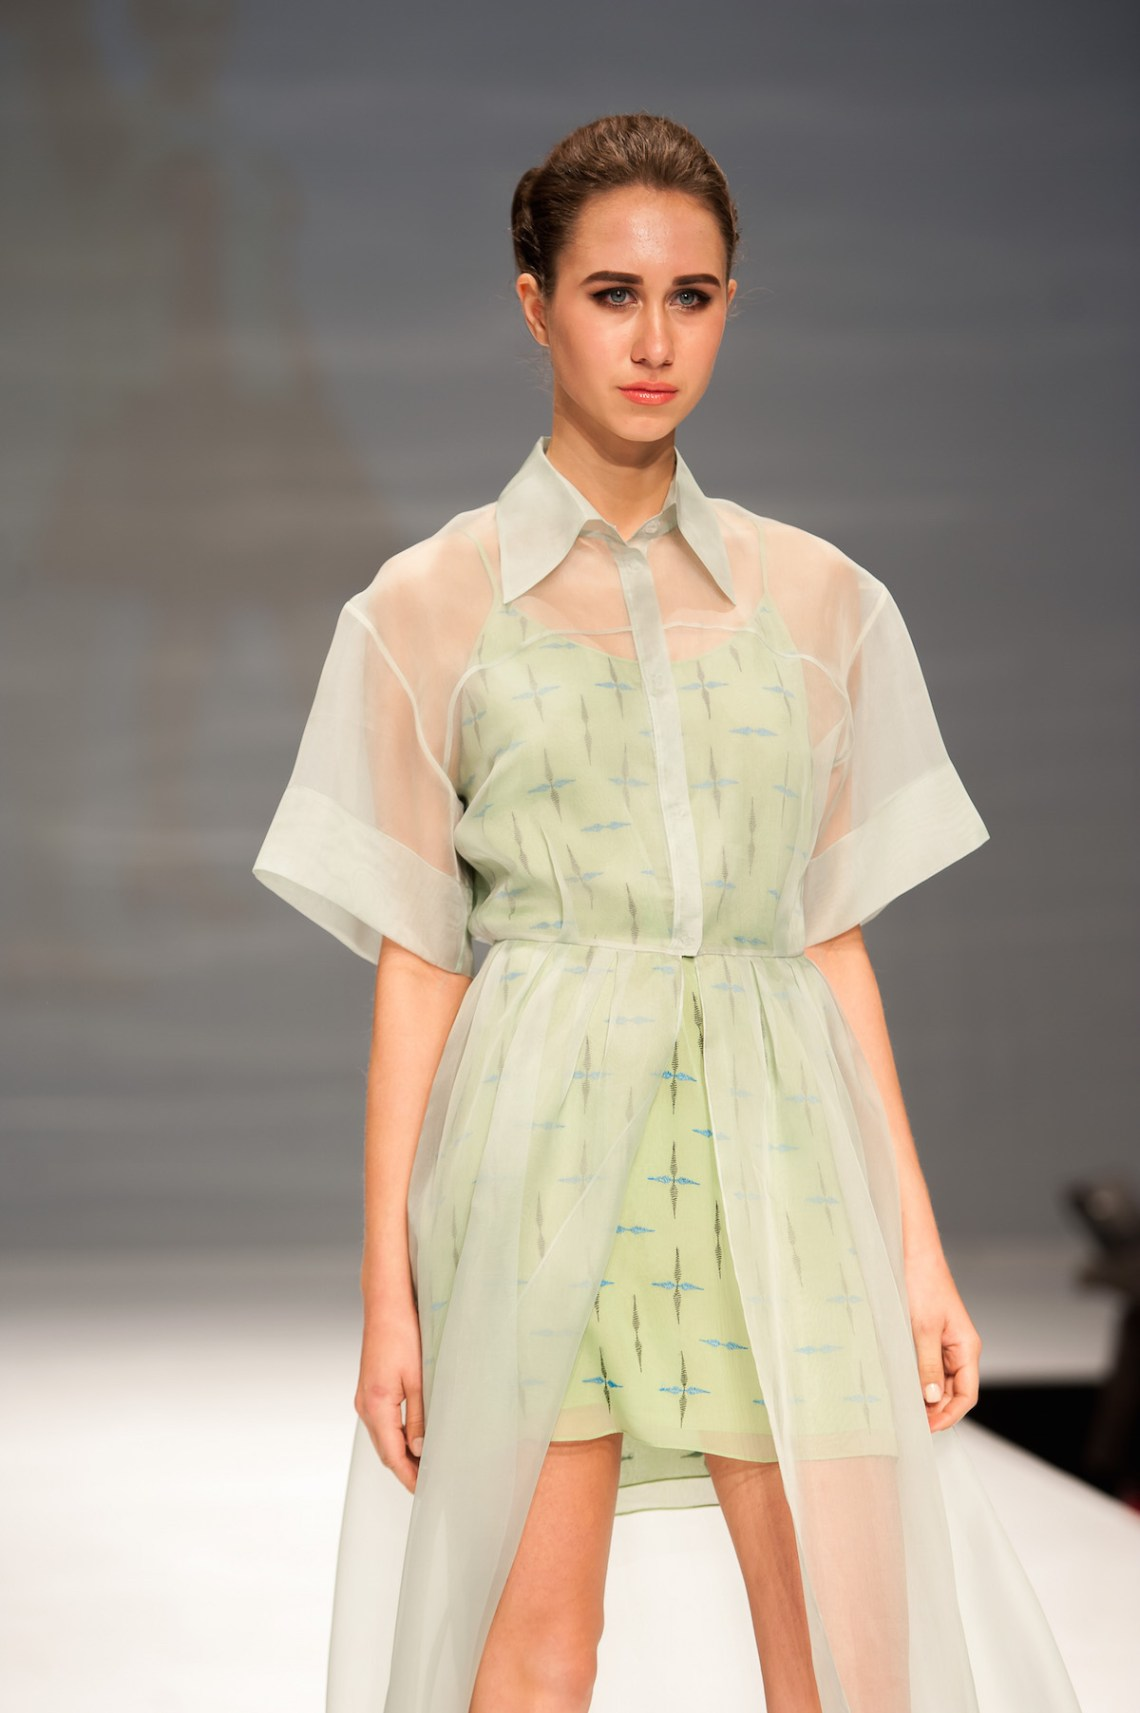 FABRIC FANCY - Spring/Summer 2016